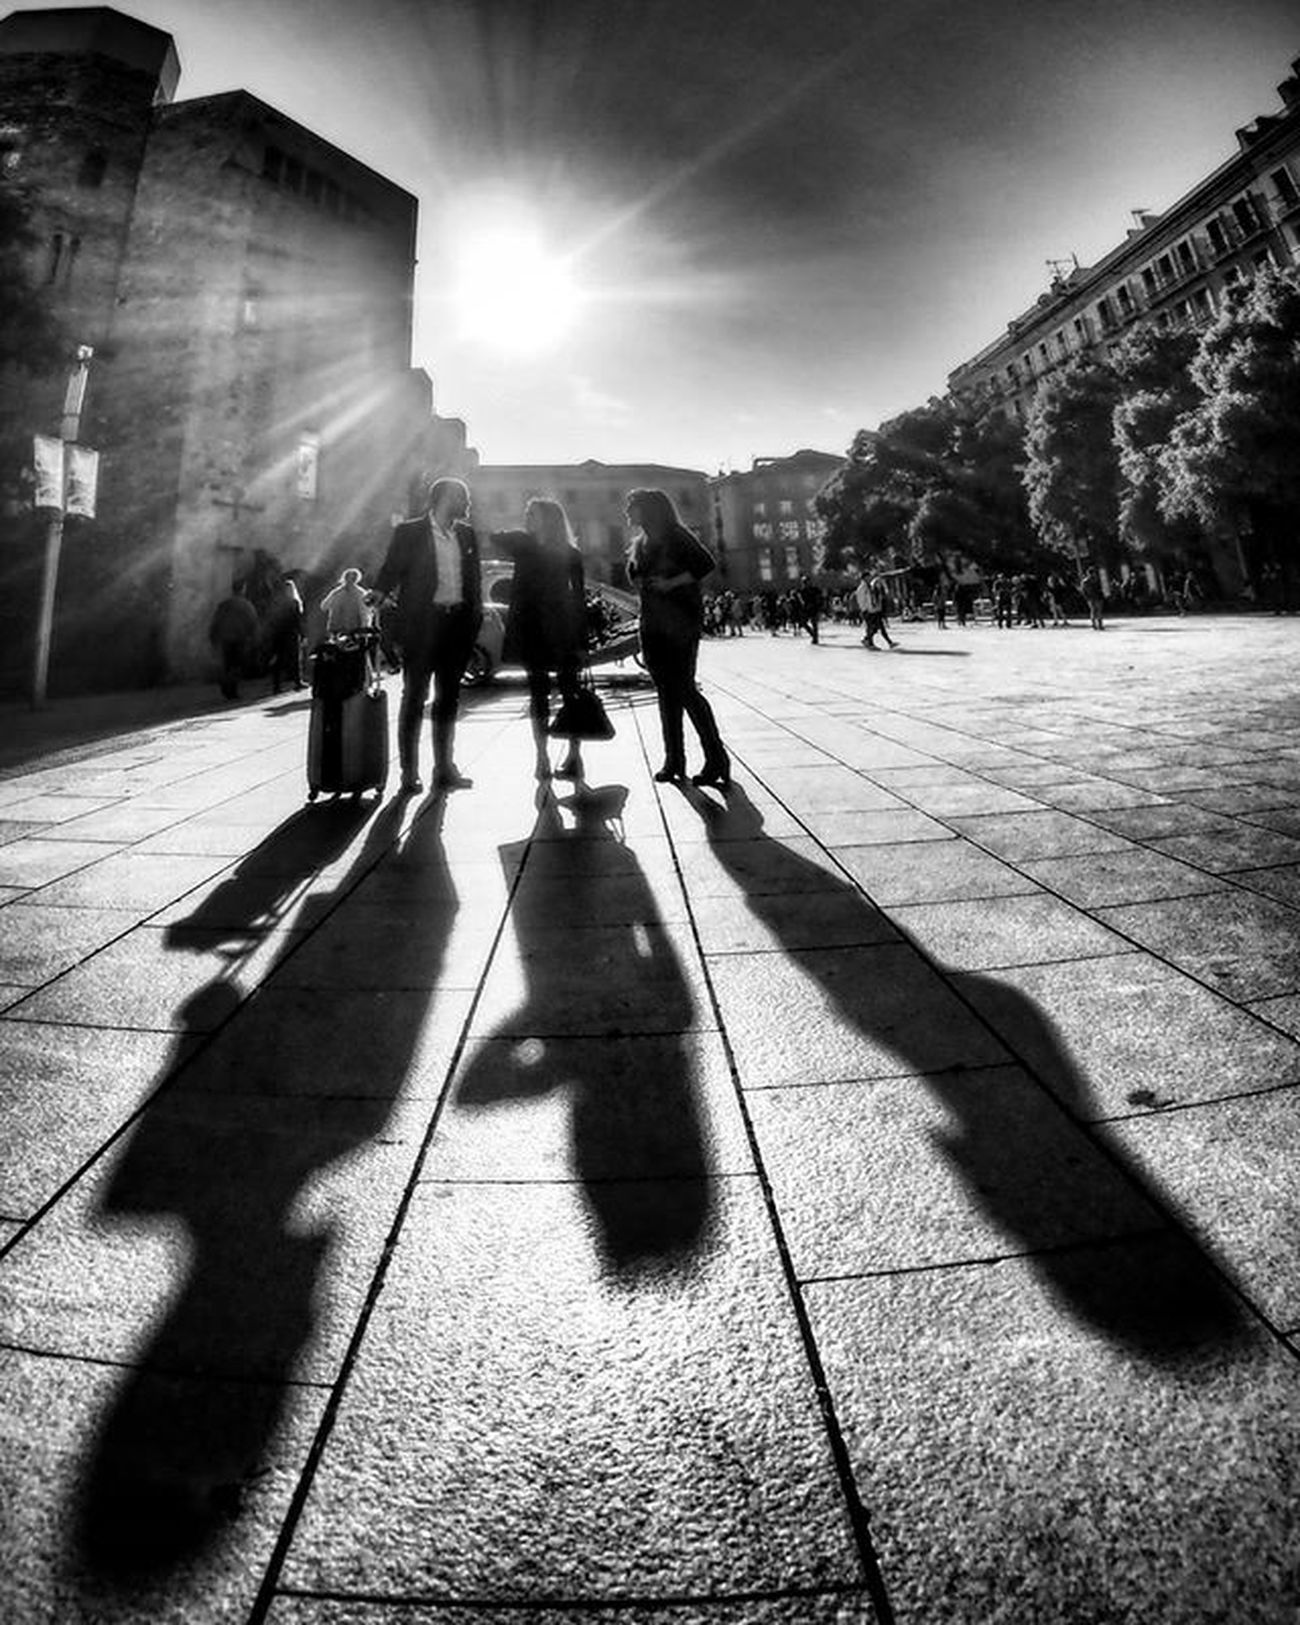 I Giganti della catalunya Giants of catalunya Ig_asti_ Ig_catalunya Ig_biancoenero _world_in_bw Dsb_noir Eranoir Bnwitalian  Excellent_bnw Ig_worldbnw Vivobnw Igclub_bnw Loves_noir Igs_bnw Ig_contrast_bnw Master_in_bnw  Top_bnw Tv_pointofview_bnw Catedrall Ig_italia_ Barcellona Featuredmeinstagood Ig_bcn Onlyinbcn Gegants